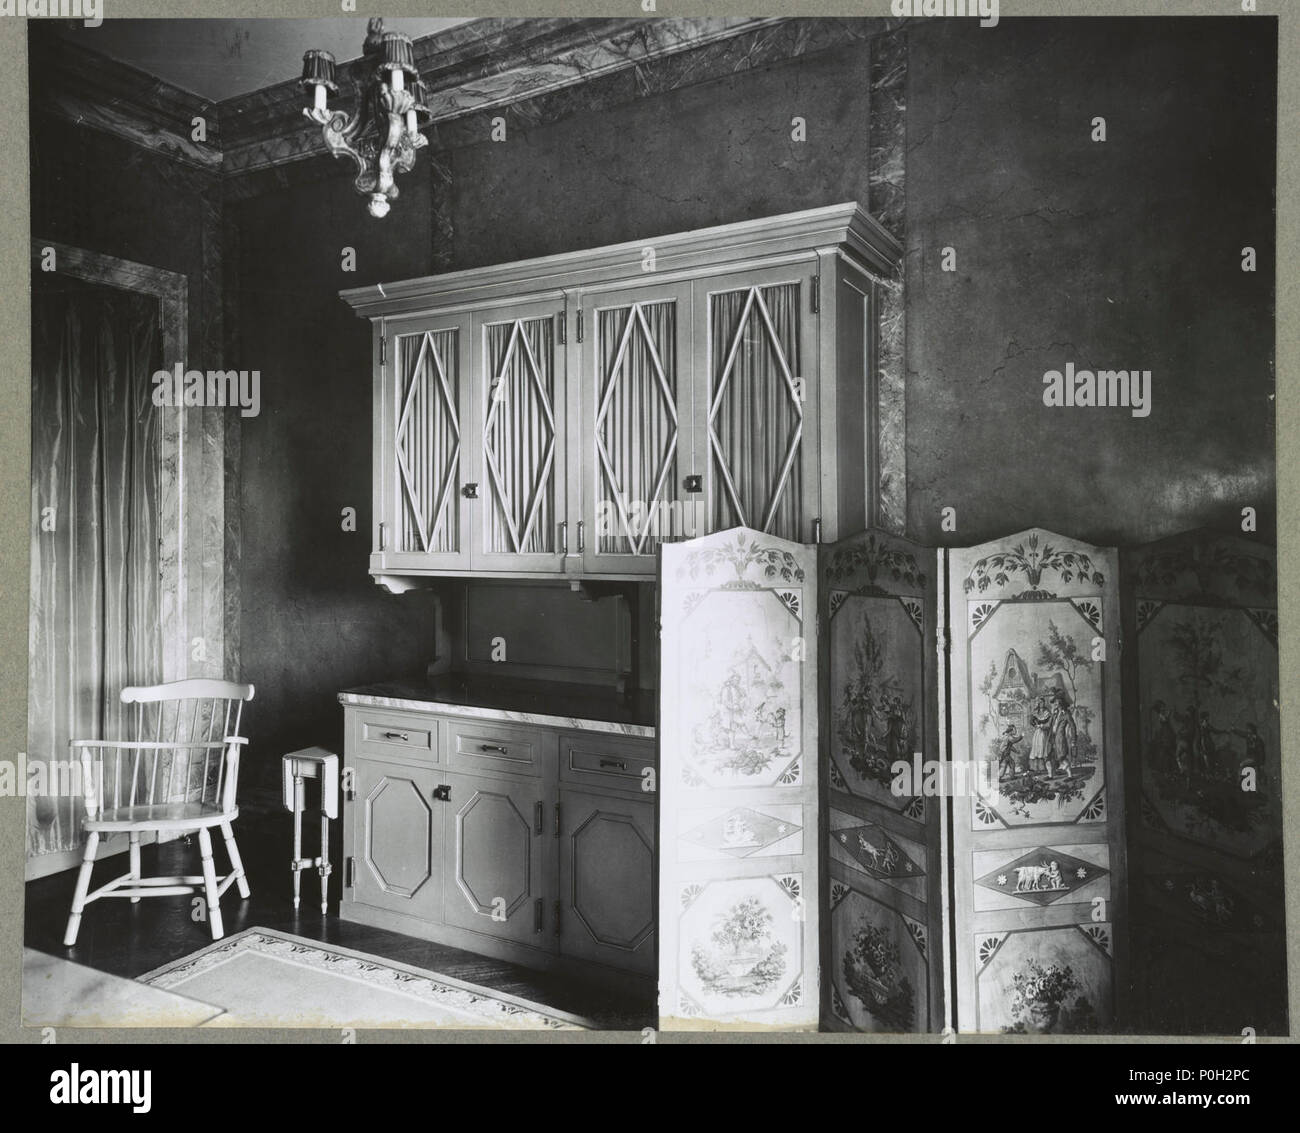 Whitemarsh Hall, Edward Townsend Stotesbury House, Wyndmoor, Pennsylvania.  Interior, Detail Of Cabinet And Screen